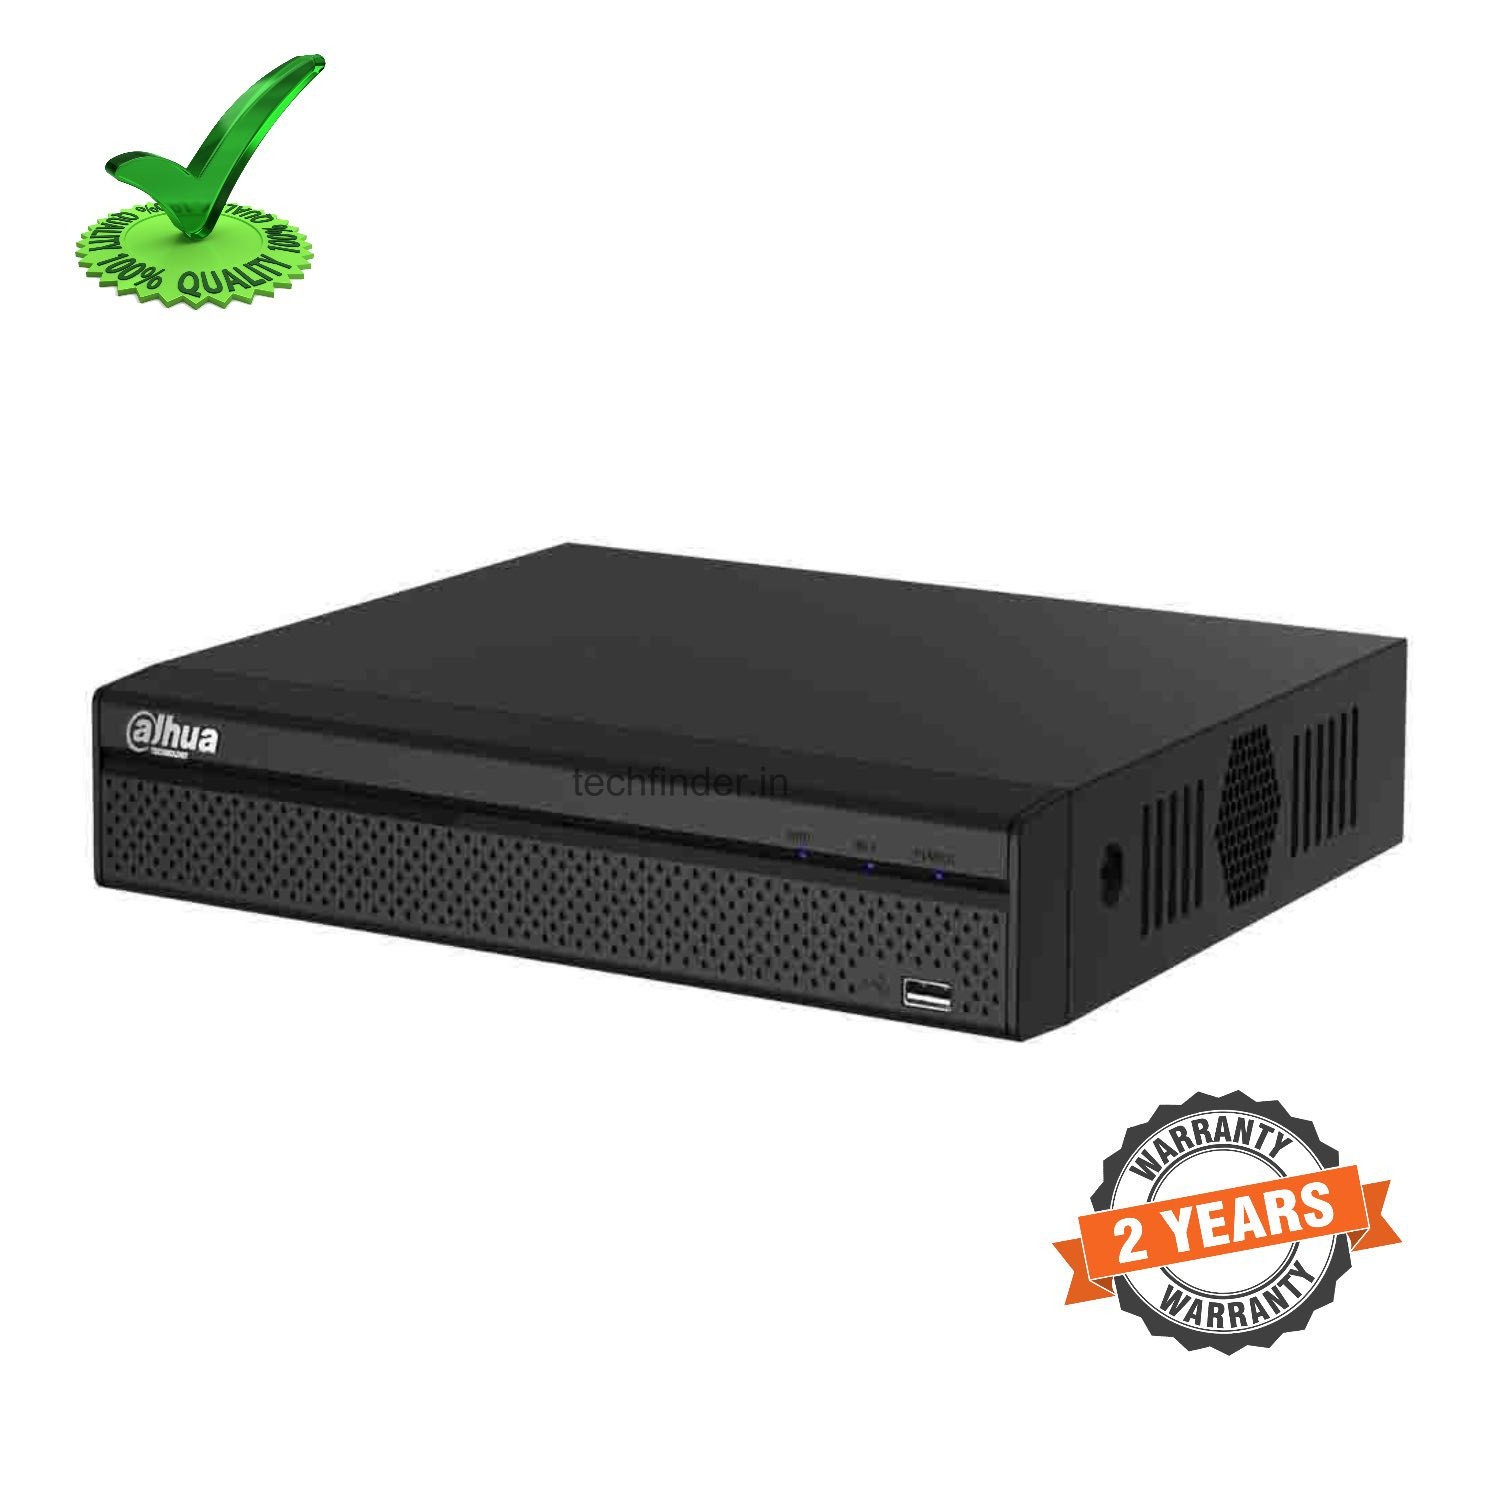 Dahua DHI-NVR2108HS-4KS2 08ch 80mbps 1 Sata 6TB Network Video Recorder